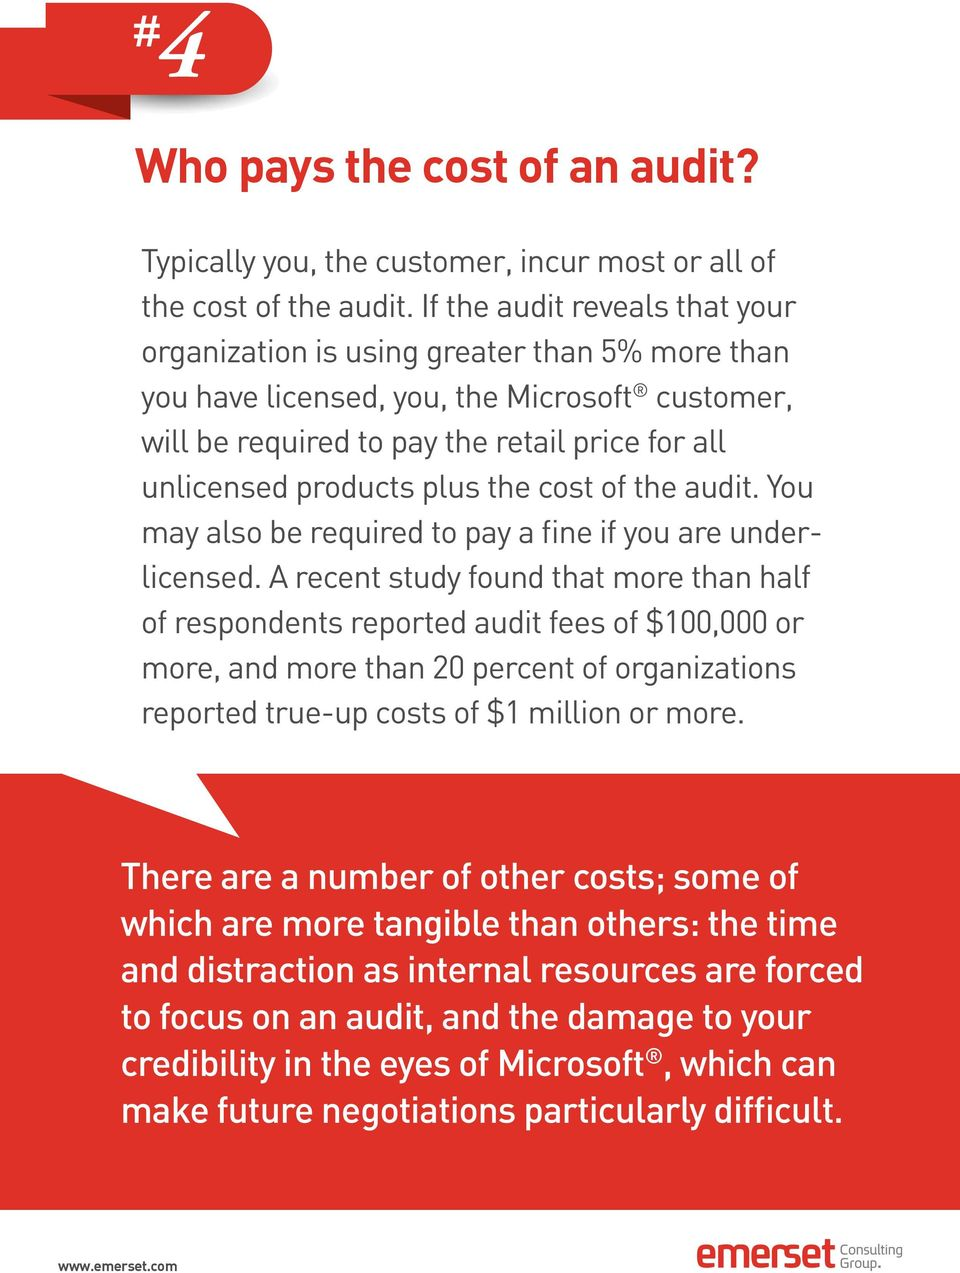 plus the cost of the audit. You may also be required to pay a fine if you are underlicensed.